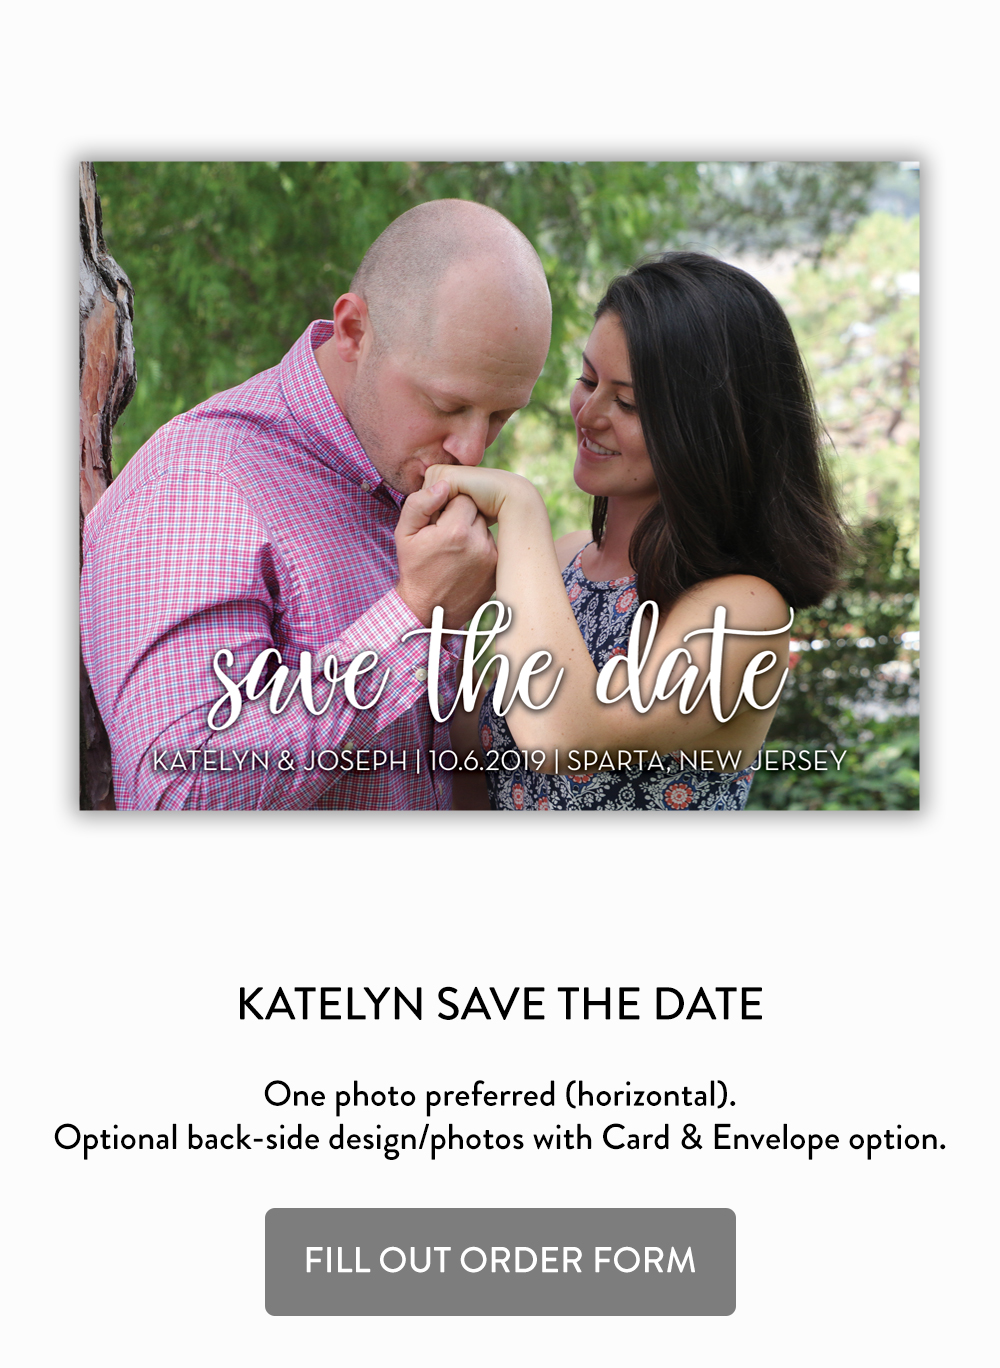 Katelyn_SavetheDate.jpg